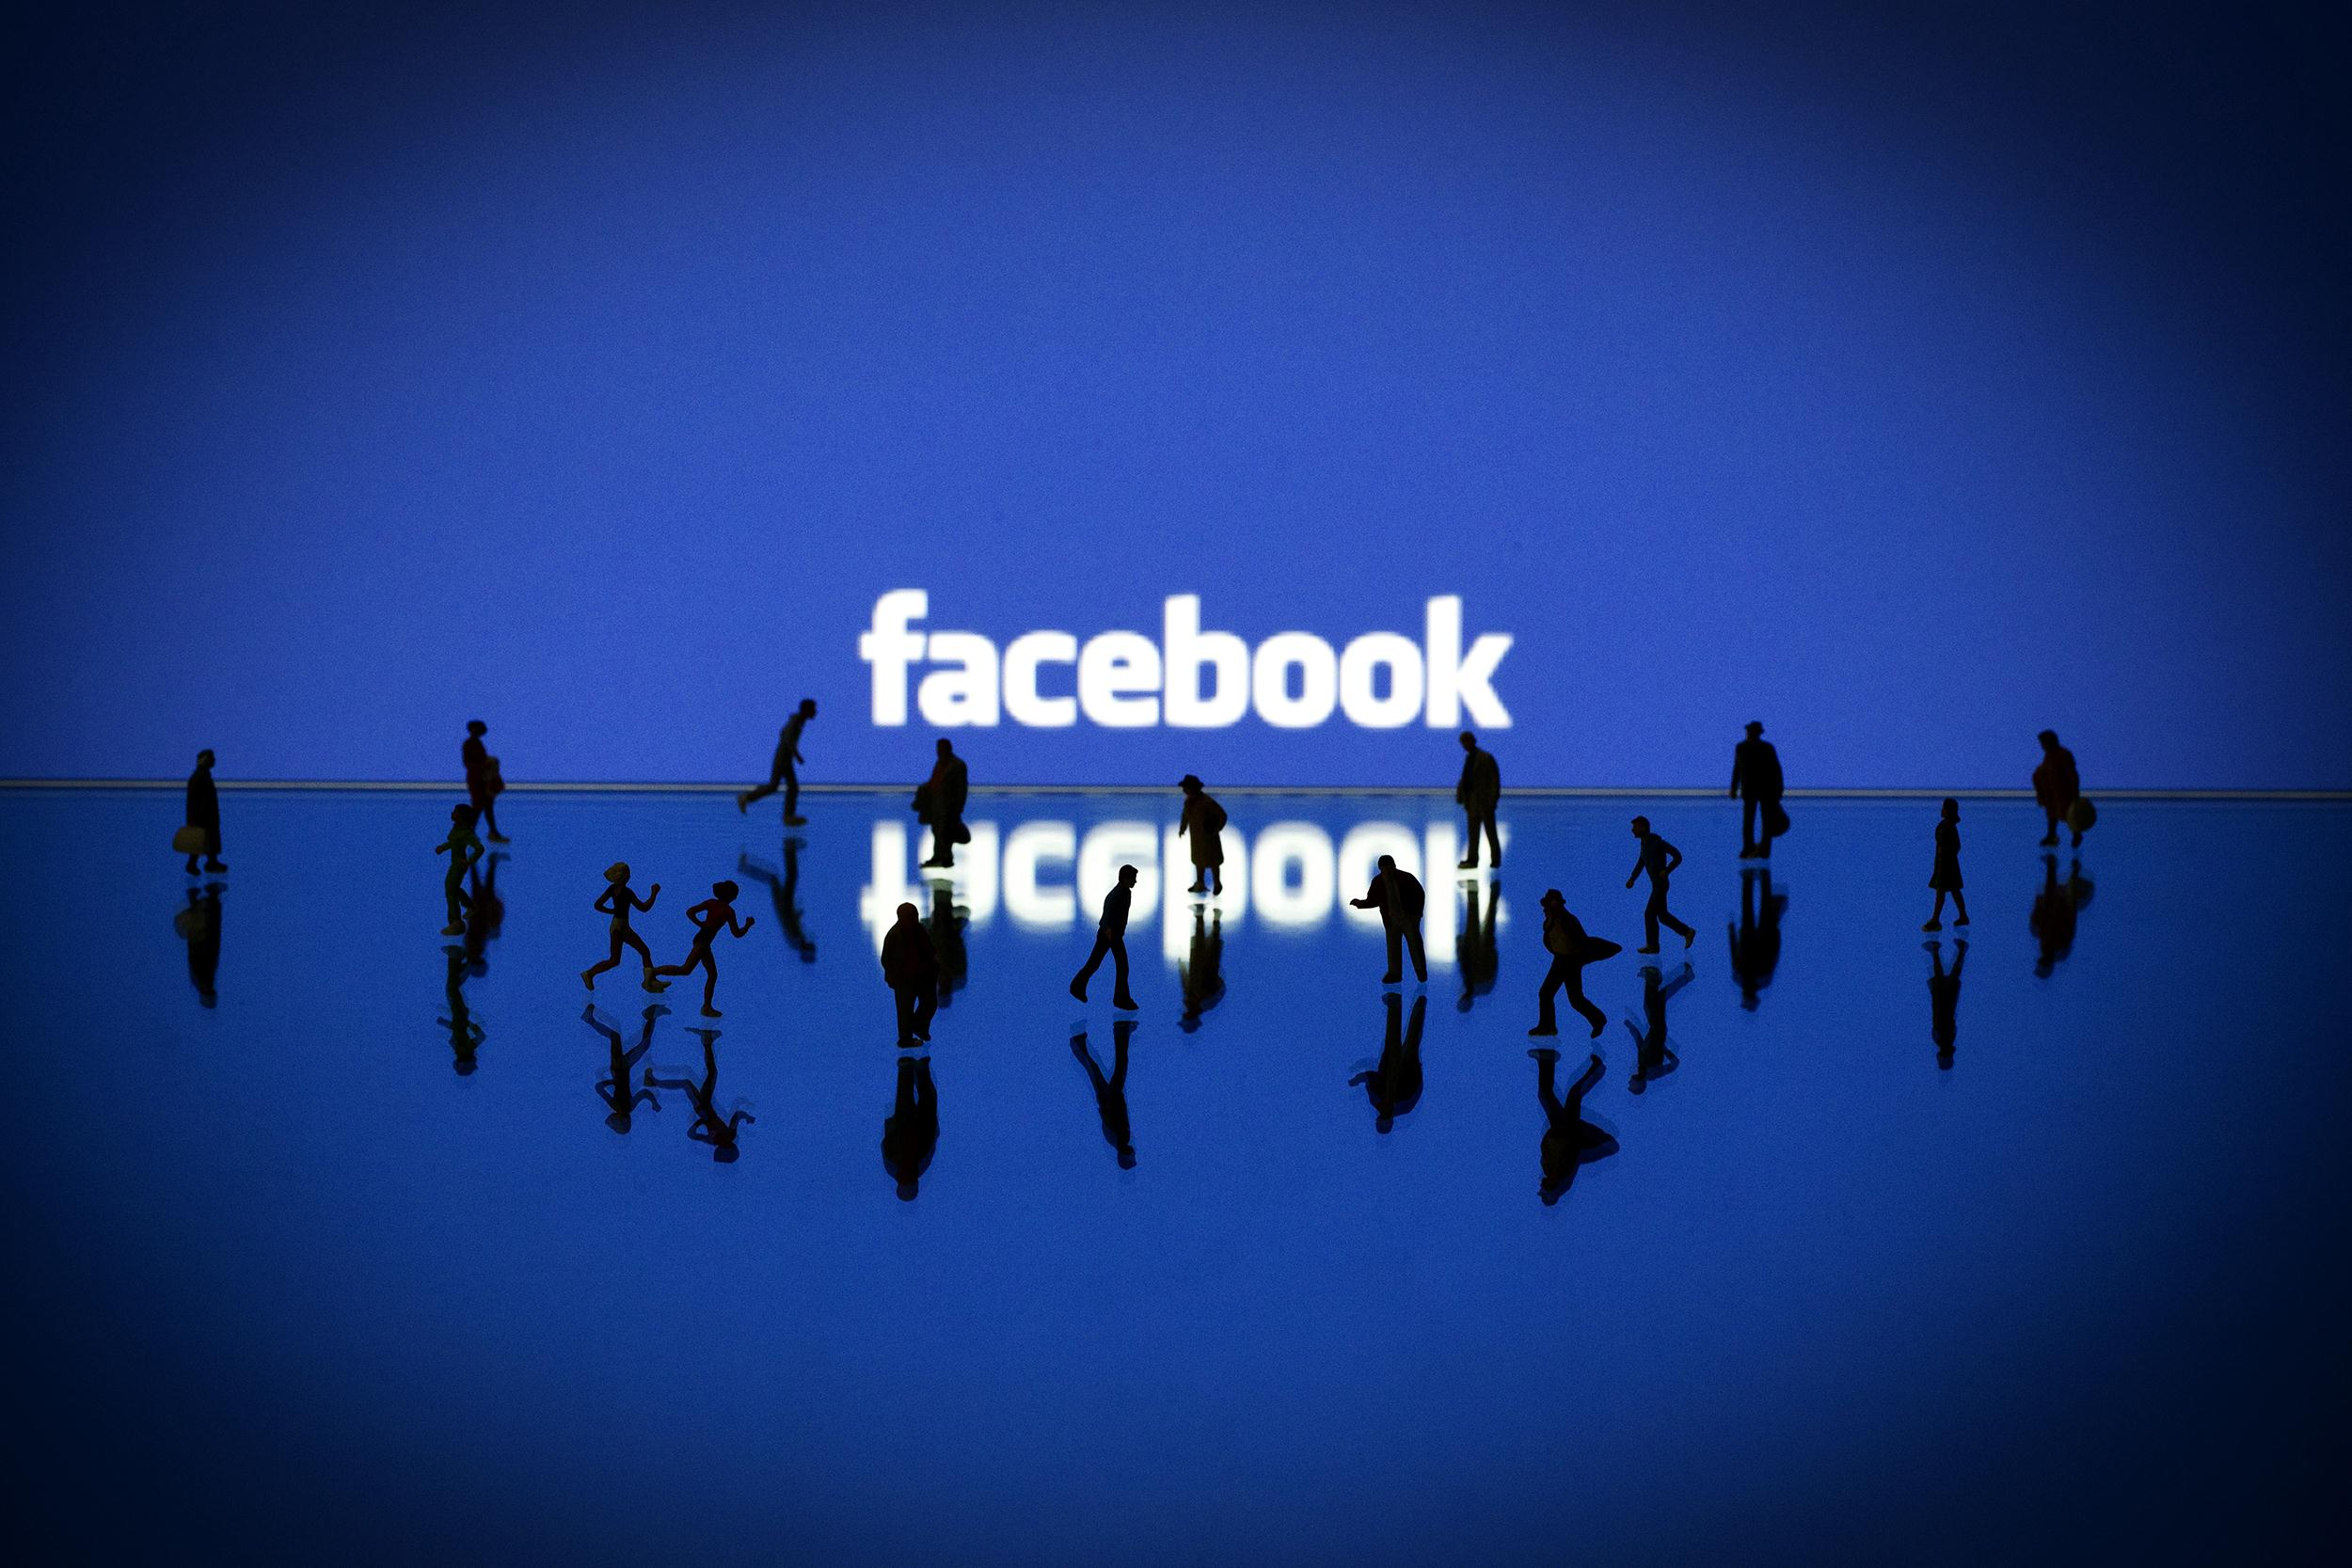 Image: An illustration made with figurines set up in front of Facebook's homepage on May 12, 2012.